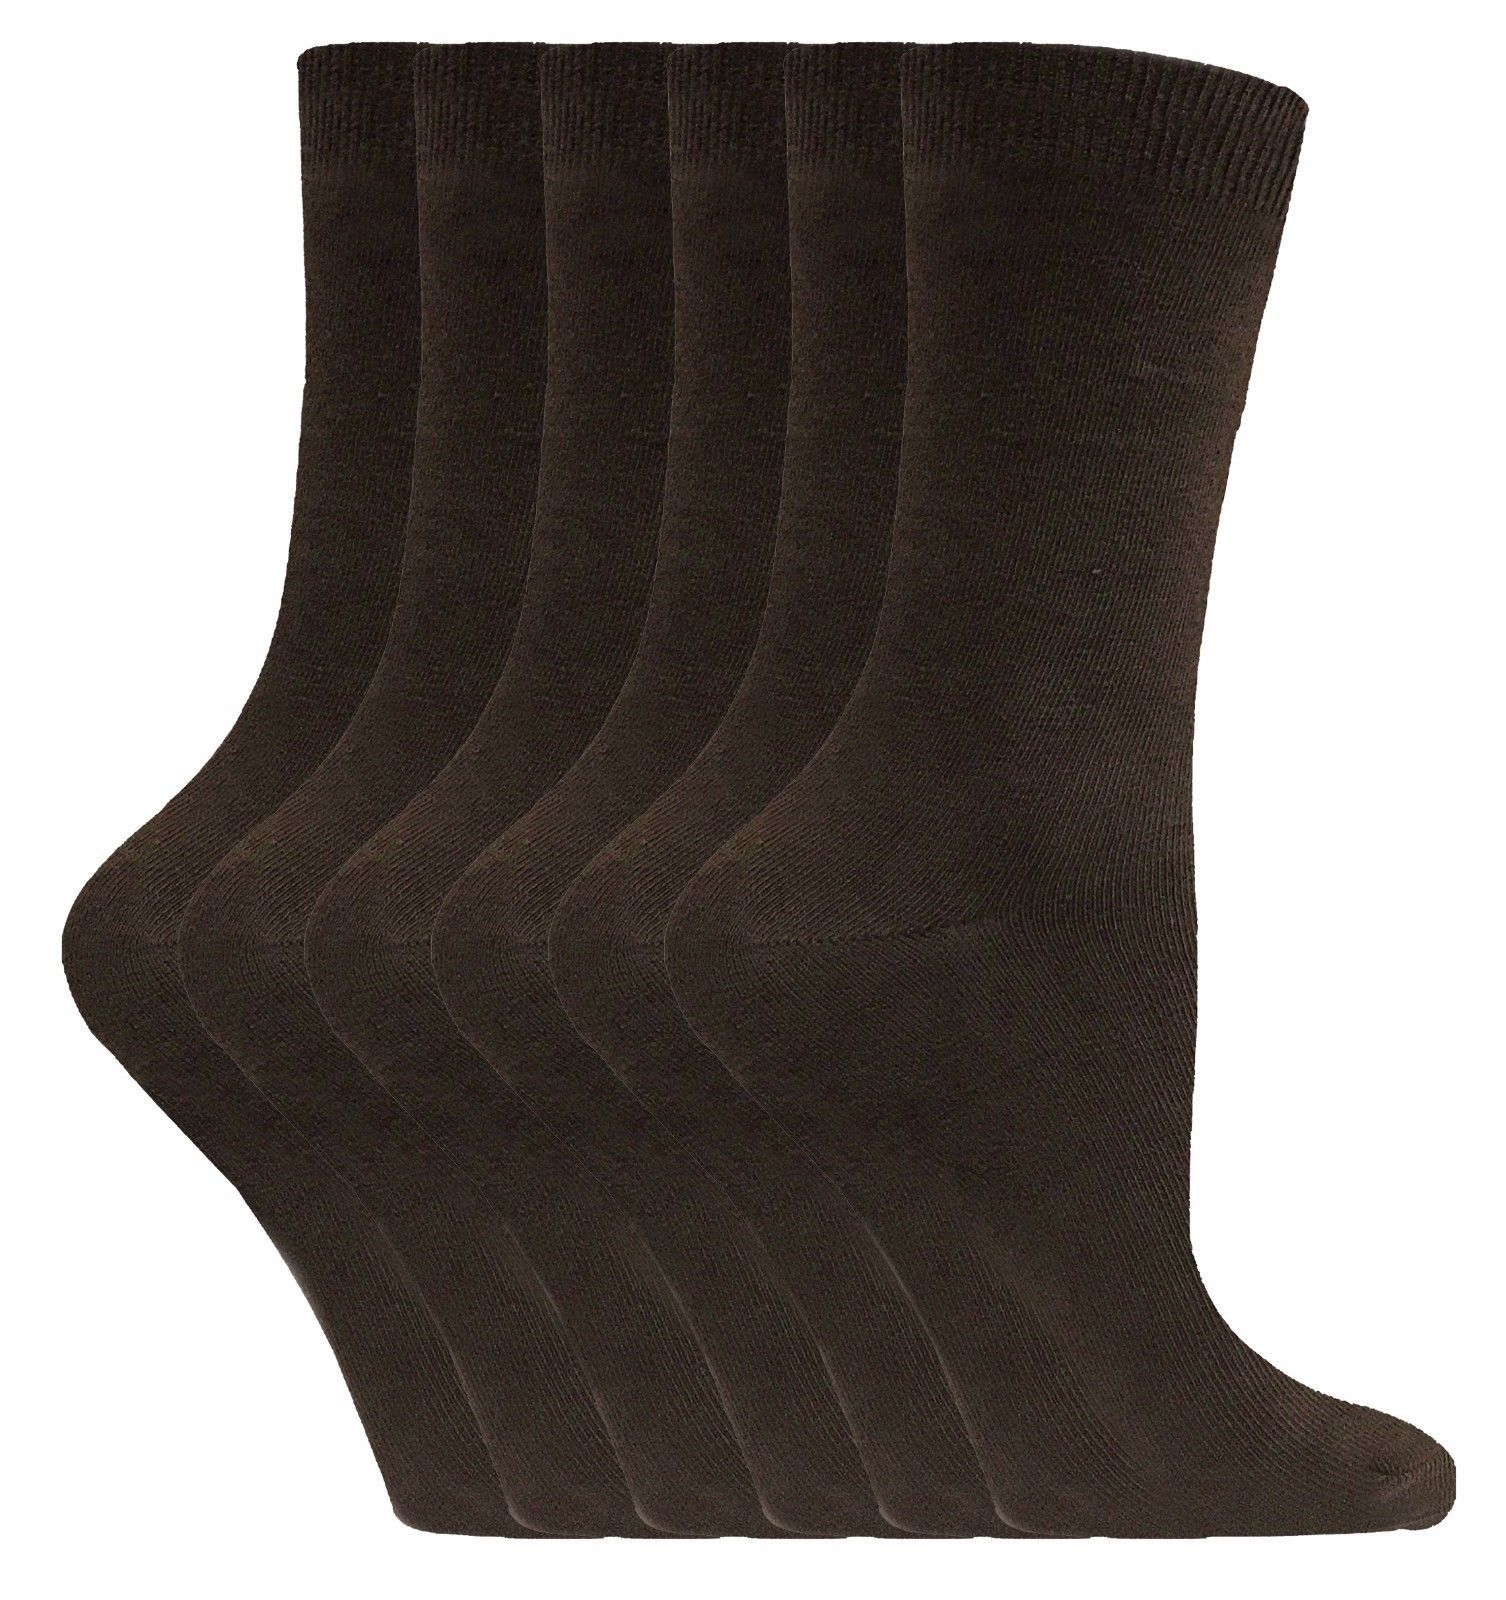 Sock Snob - 6 Pairs Thin Casual Plain Coloured Cotton Rich Dress Socks - PL30